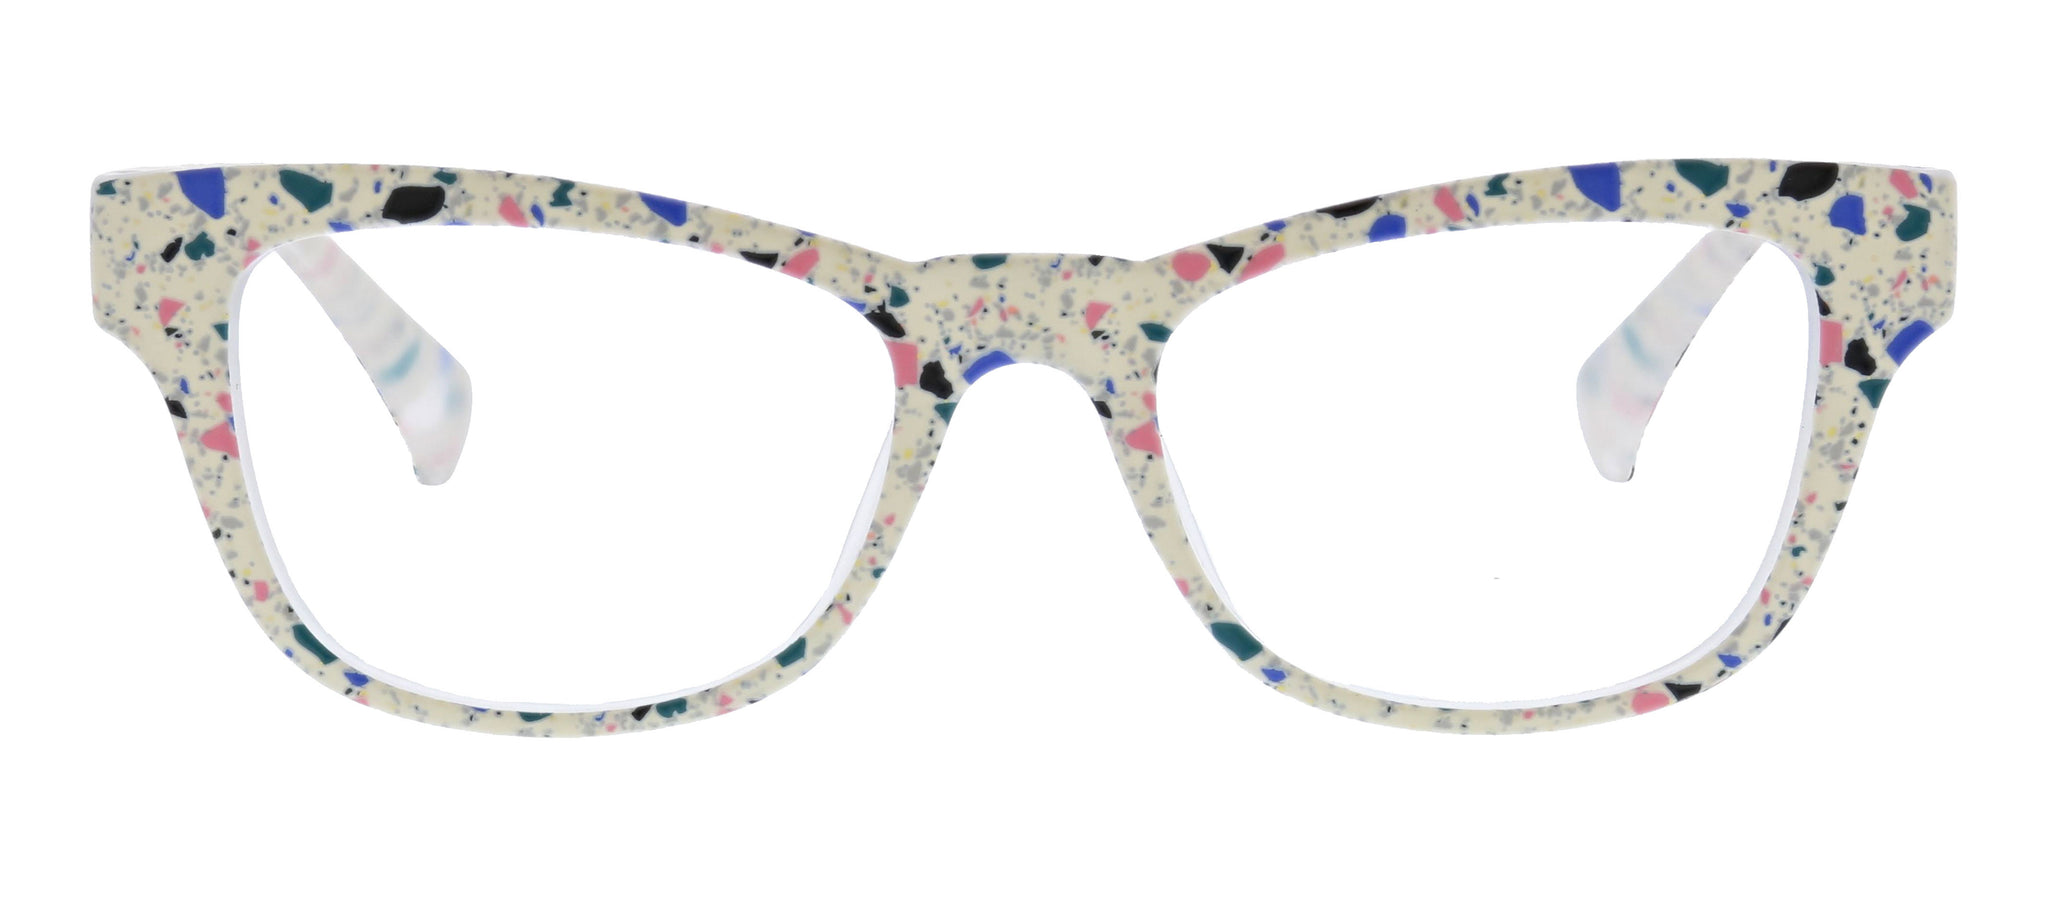 Terrazzo blue light reading glasses by Peepers